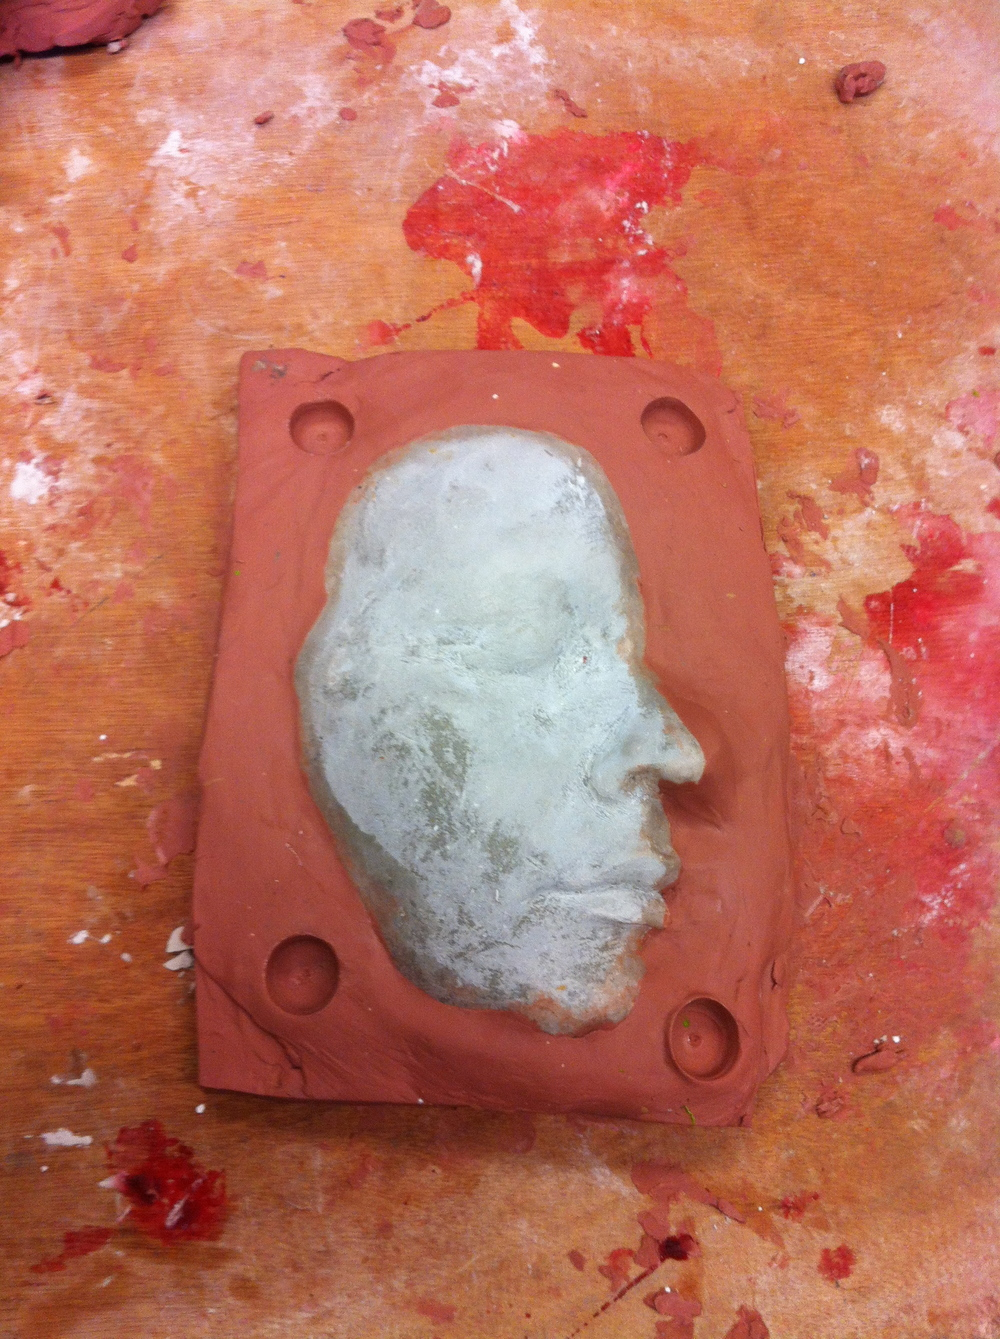 Face positive ready for a prosthetic to be sculpted upon it.